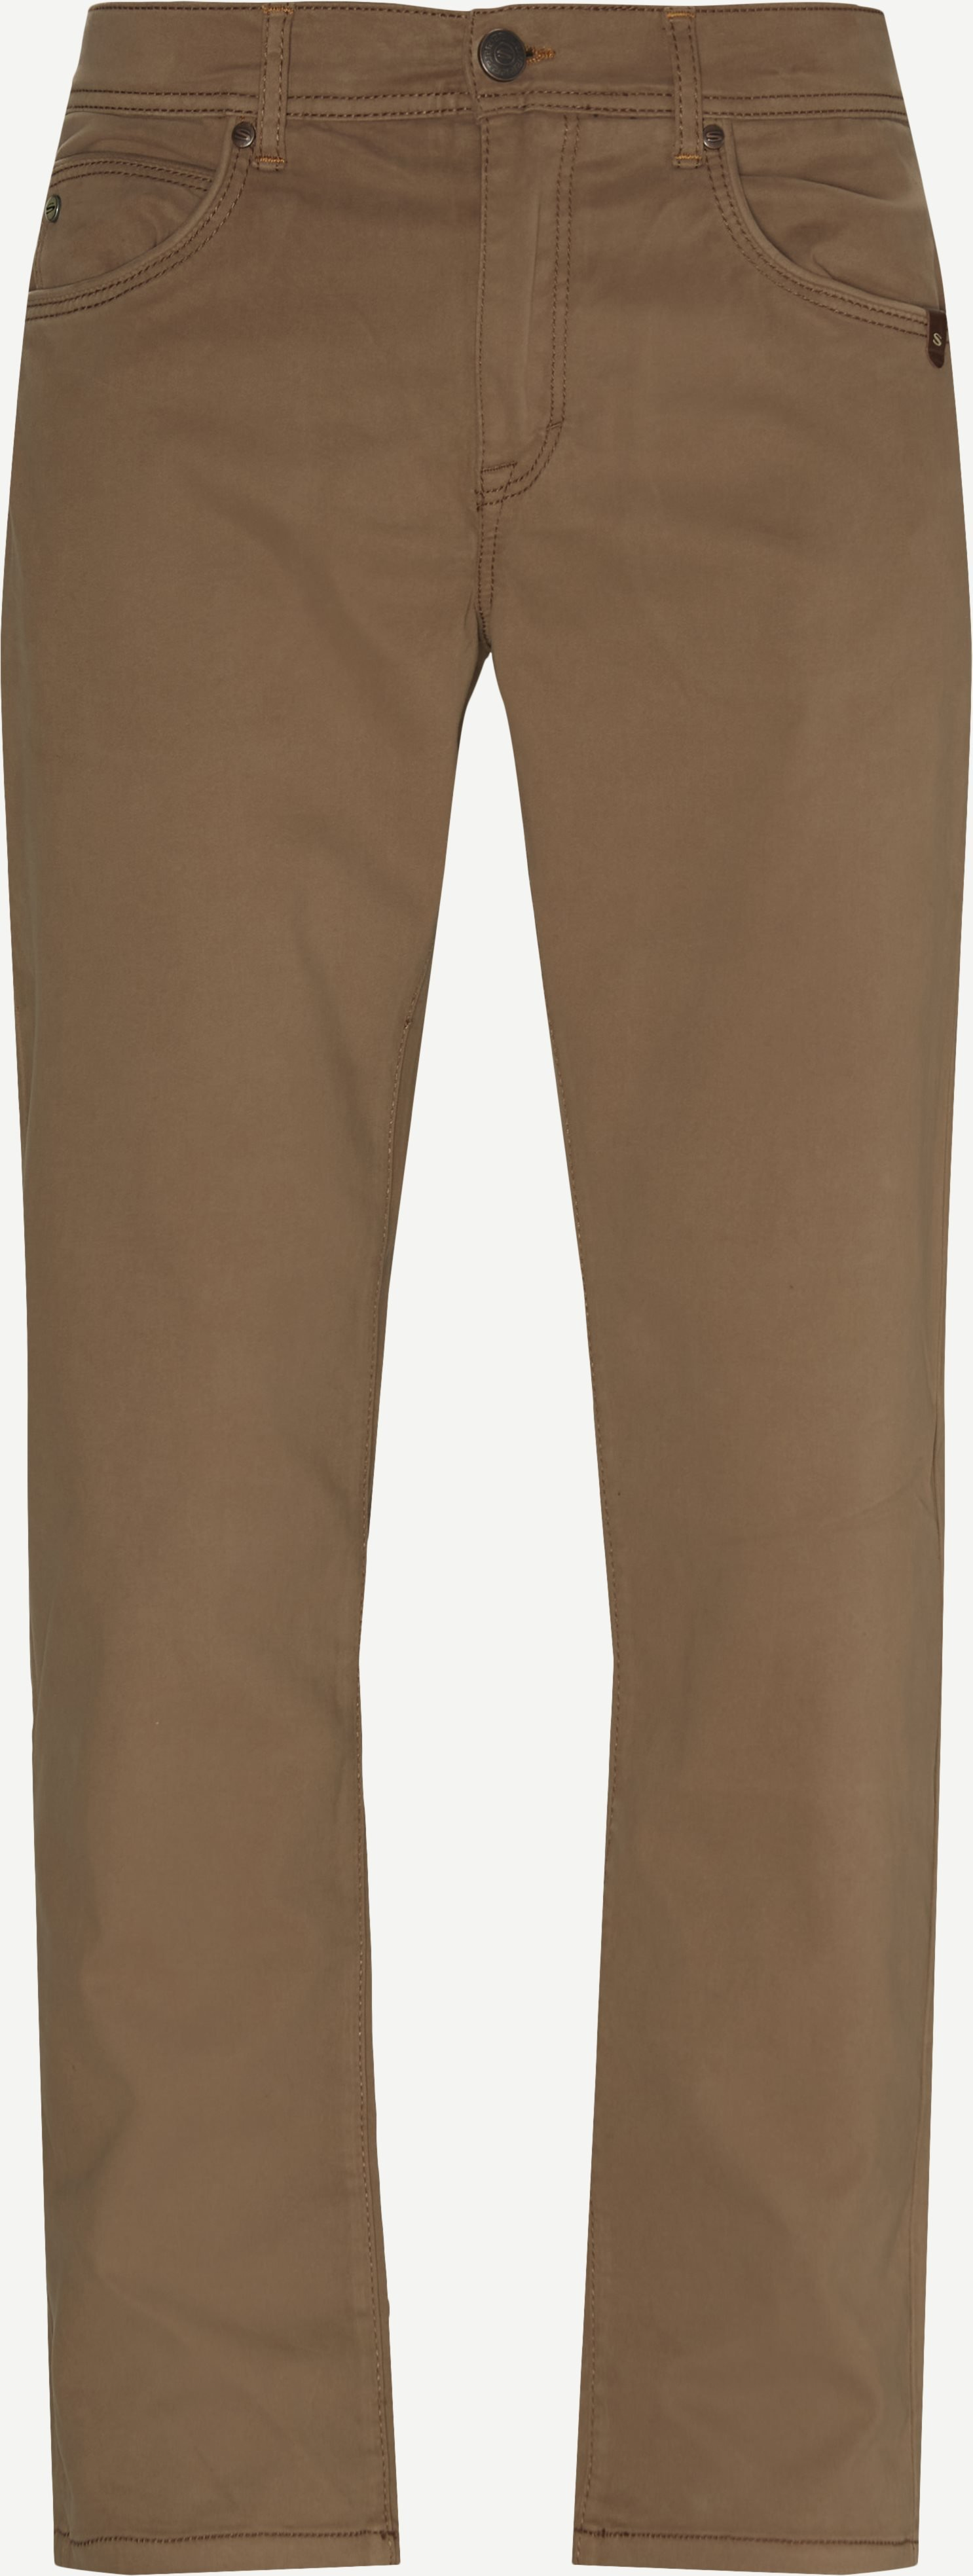 Suede Touch Burton Jeans - Jeans - Modern fit - Sand